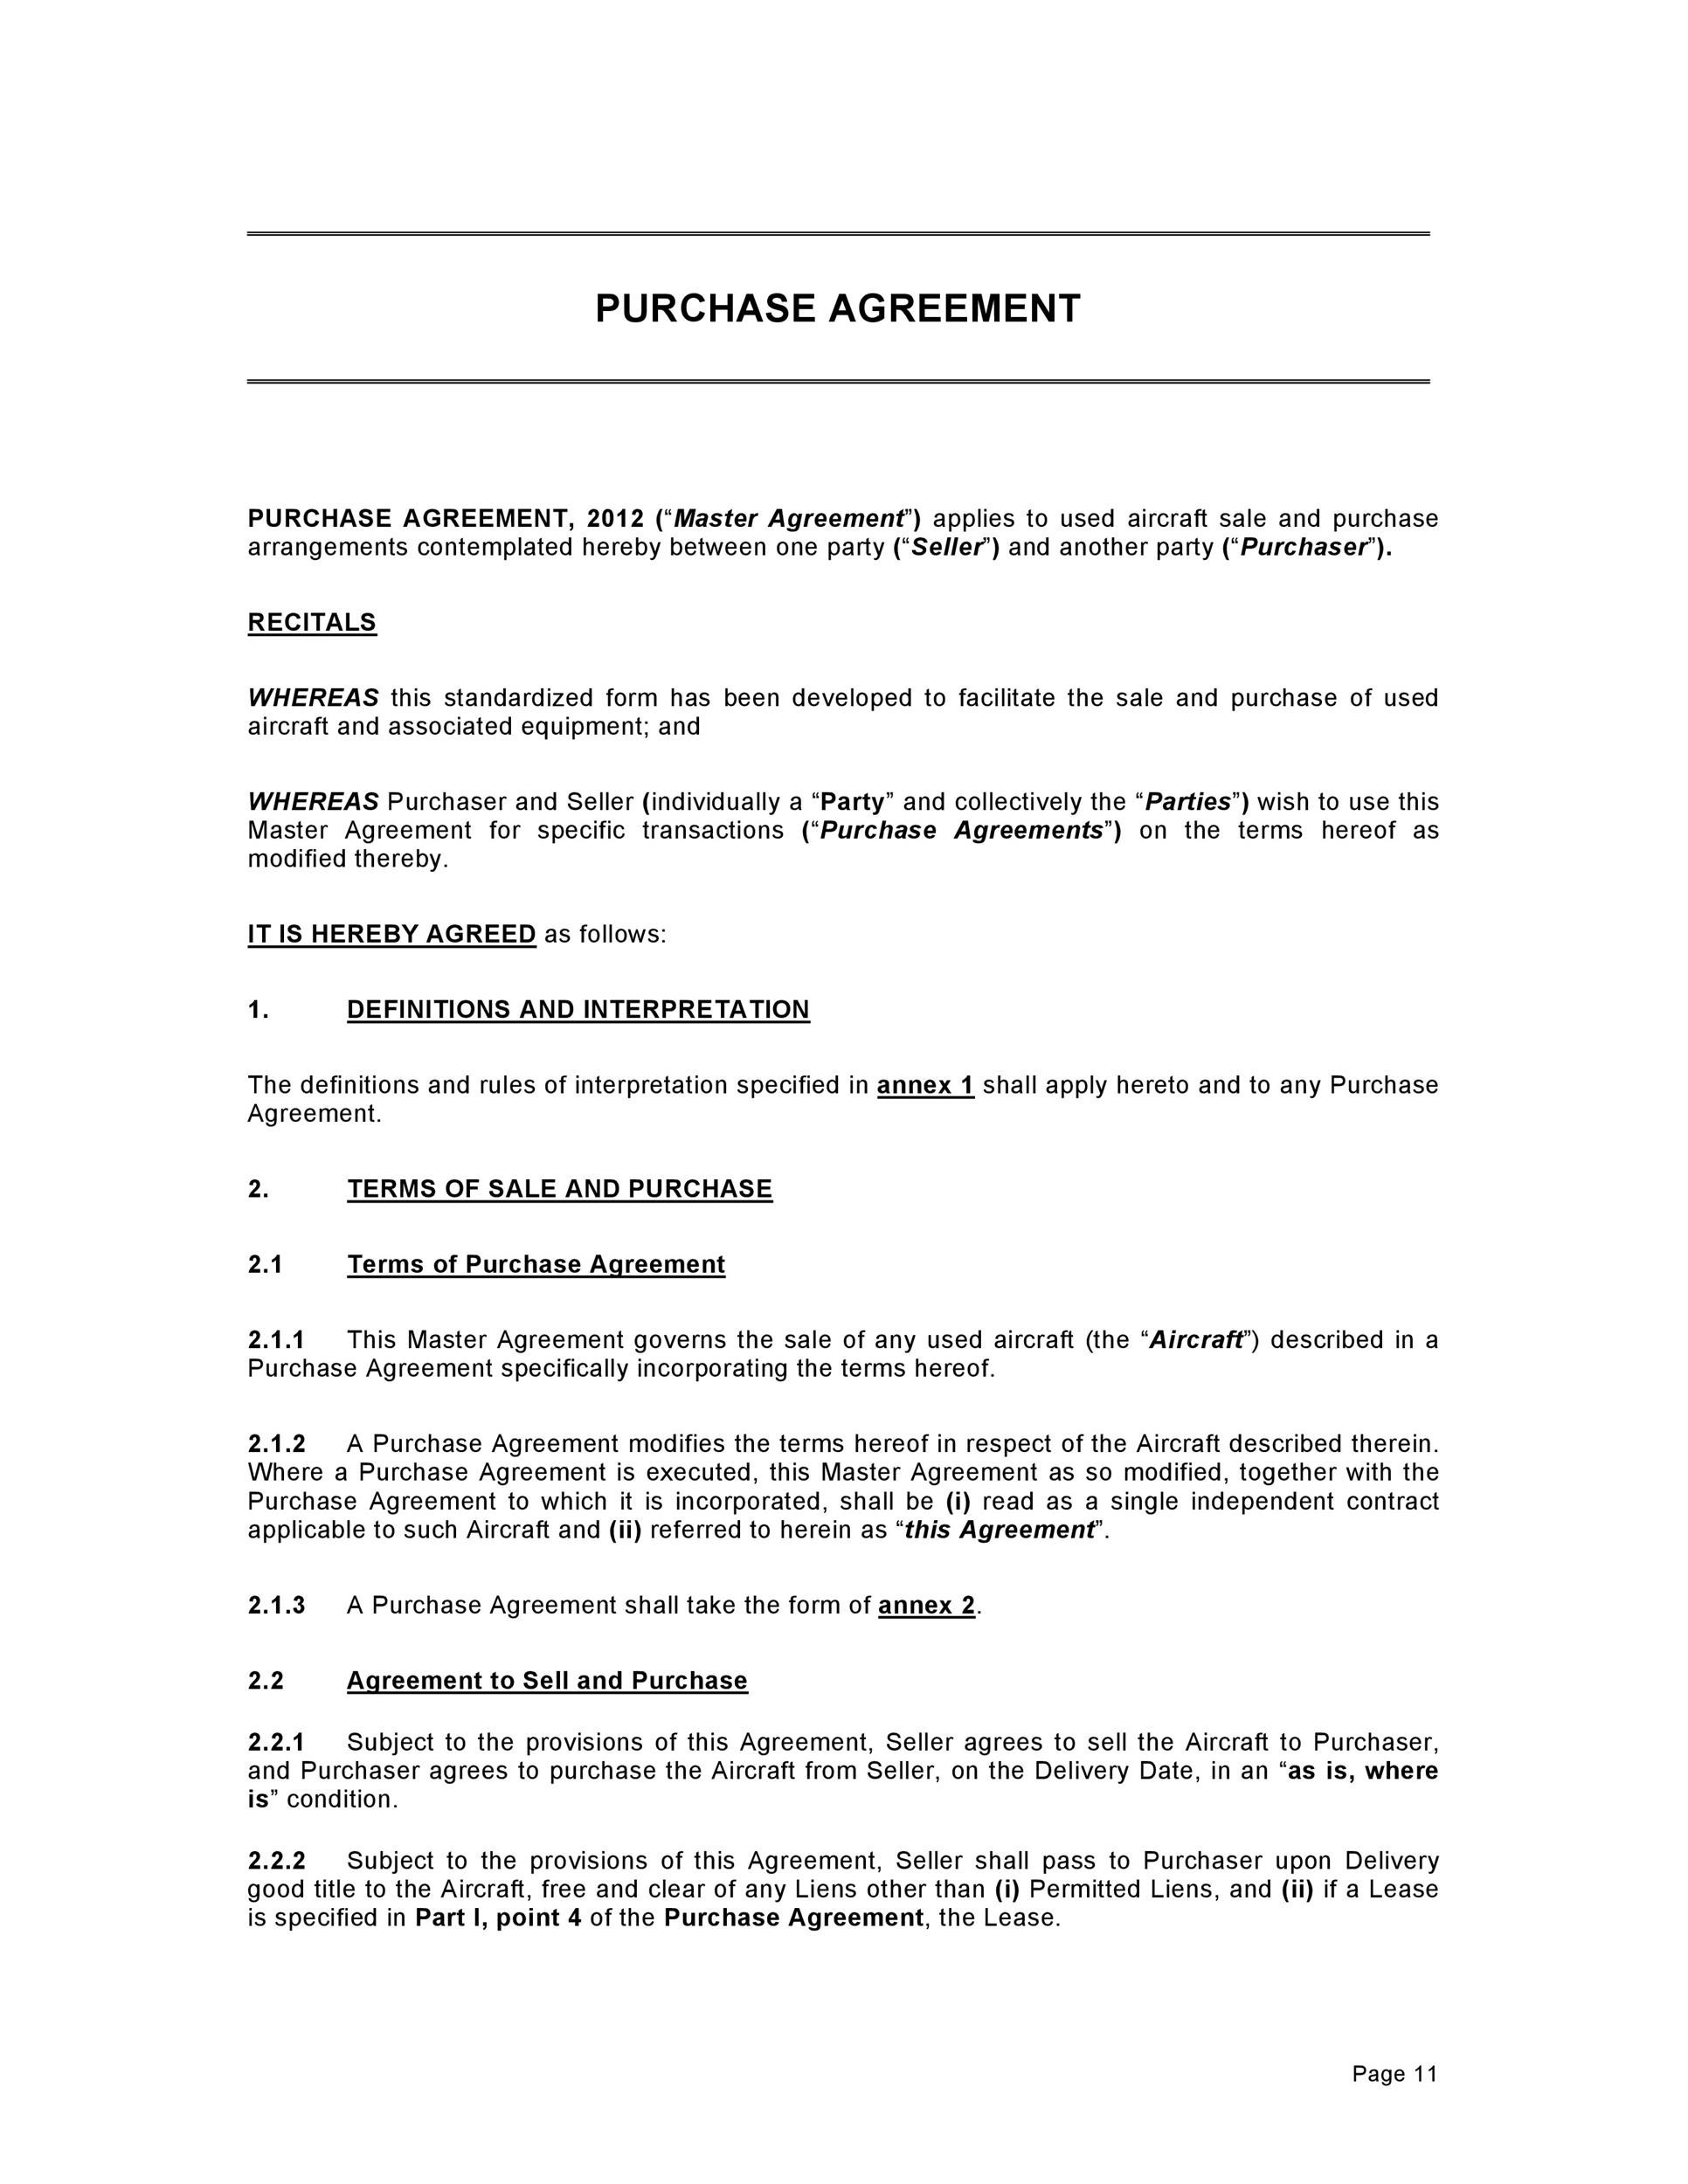 Business Agreement Contract. Sample Business Contract Between Two